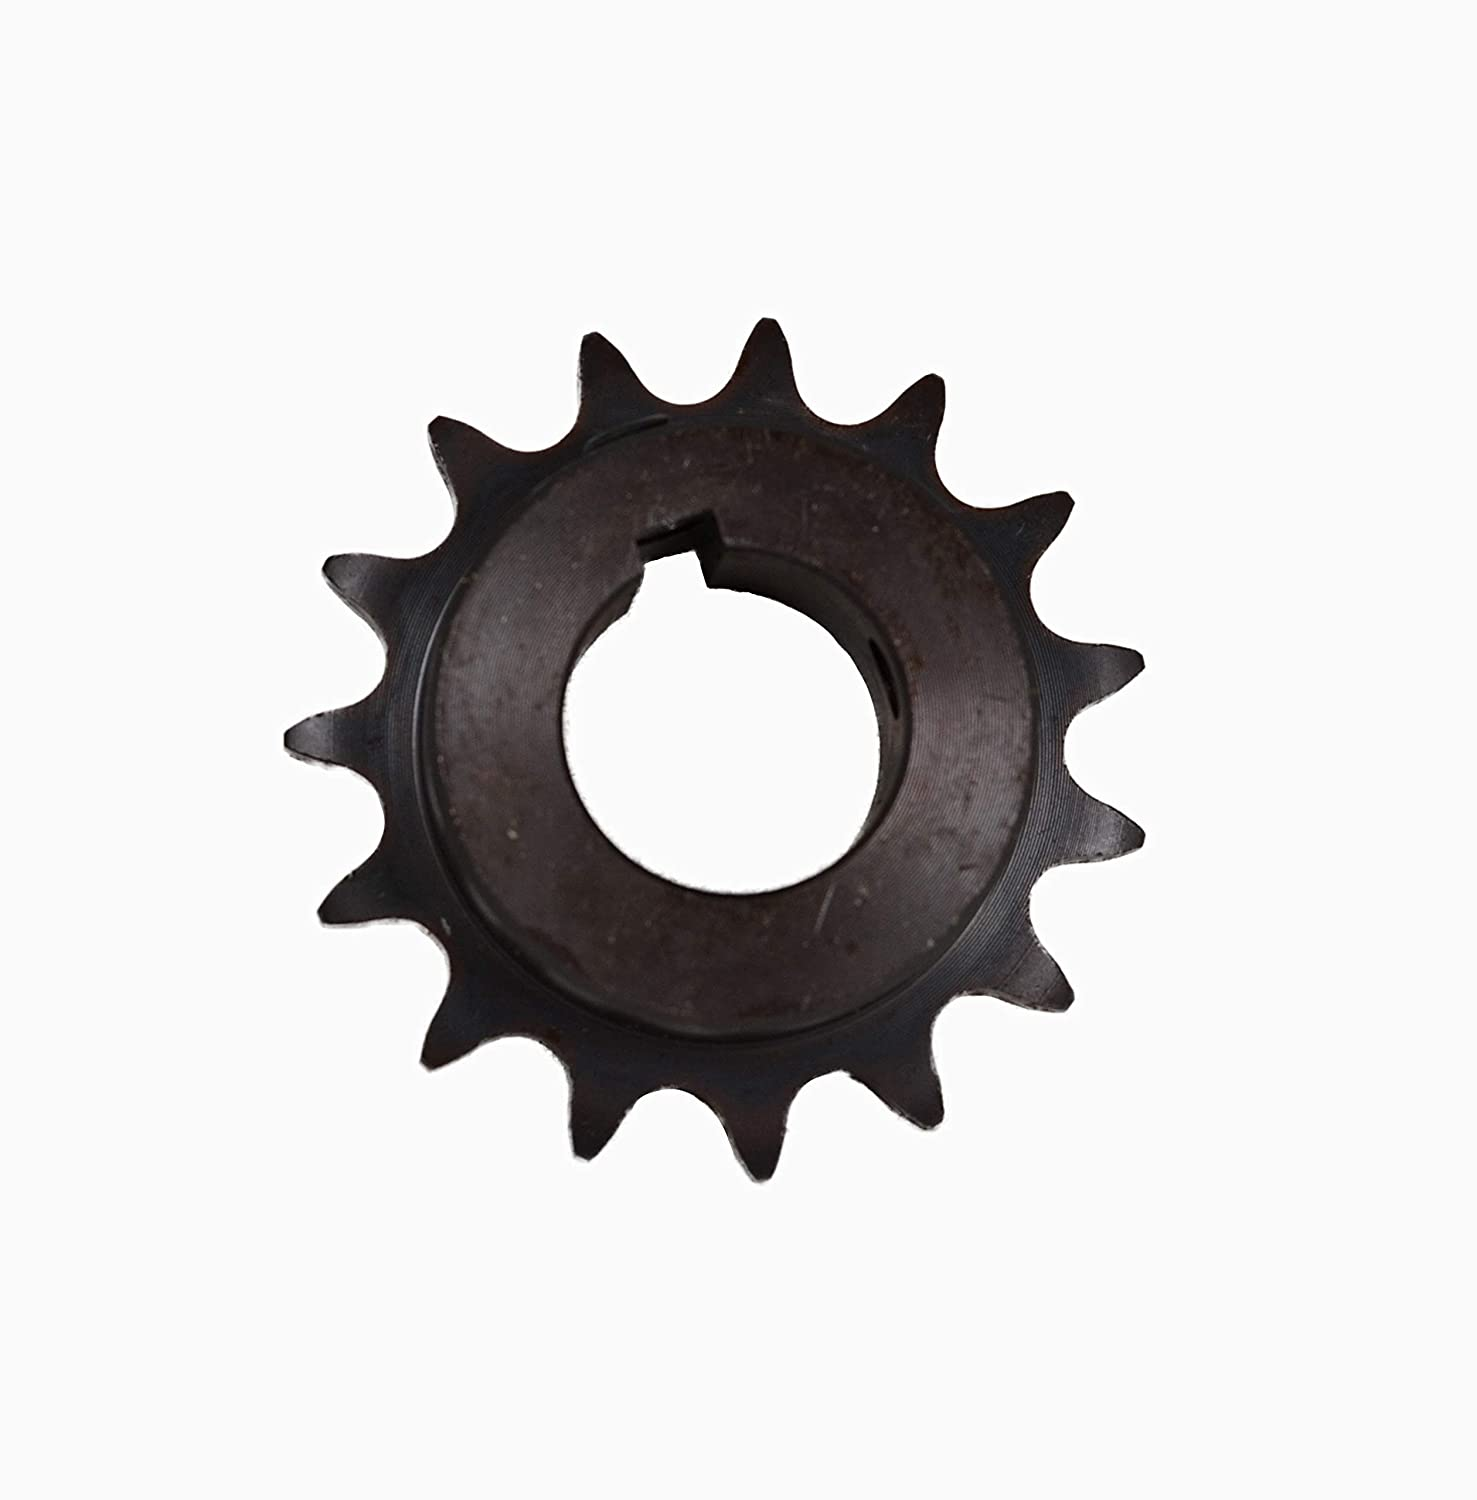 Black Oxide Finish 133582 3.32 Outer Diameter Bored to Size Sprockets: 1 Bore Hardened Teeth 50 Chain Size 15 Teeth